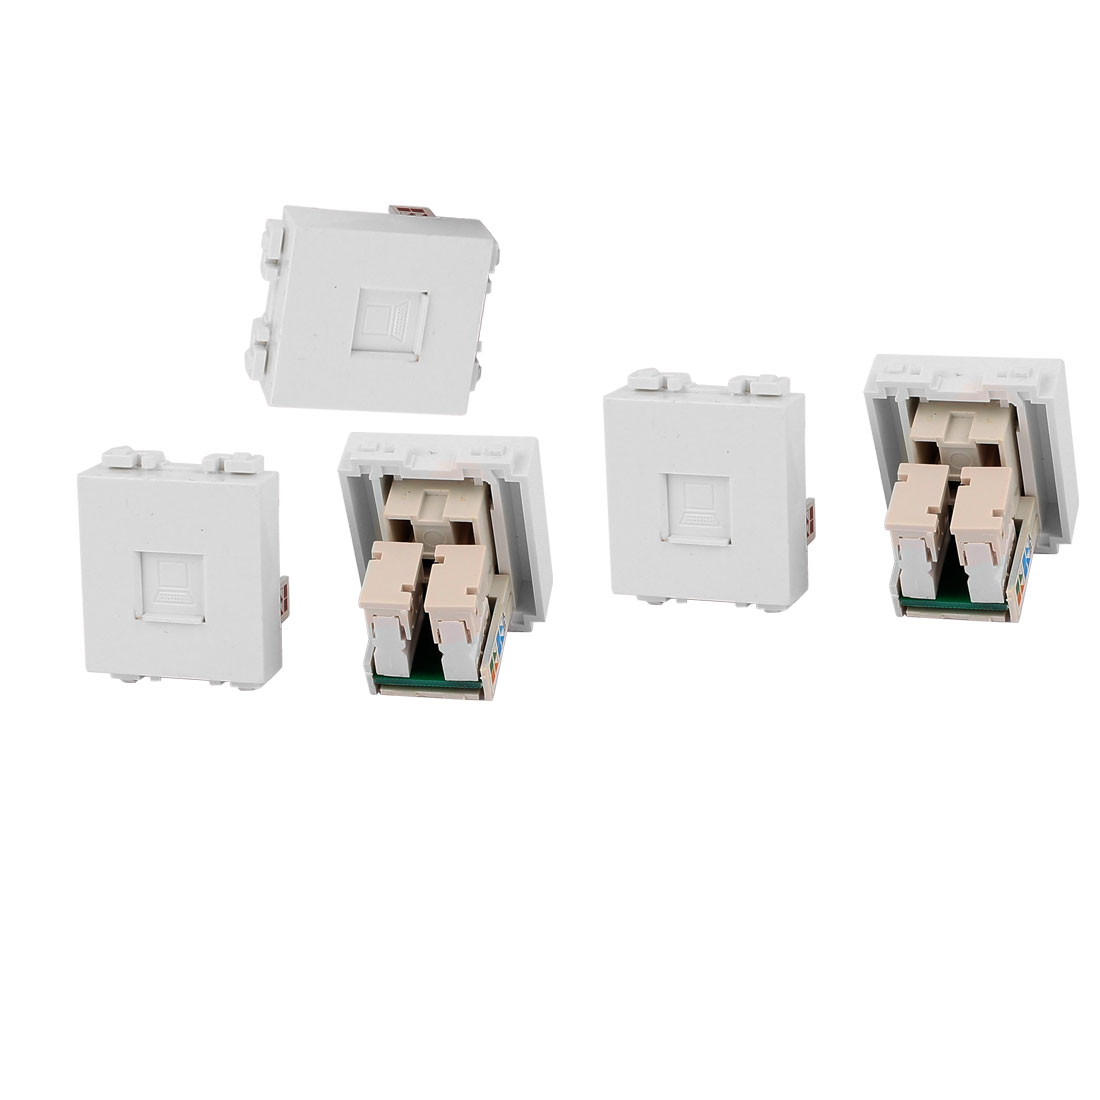 5 Pcs RJ45 8P8C PC Notebook Network Coupler Connection Modular Socket for 128 Wall Plate Panel